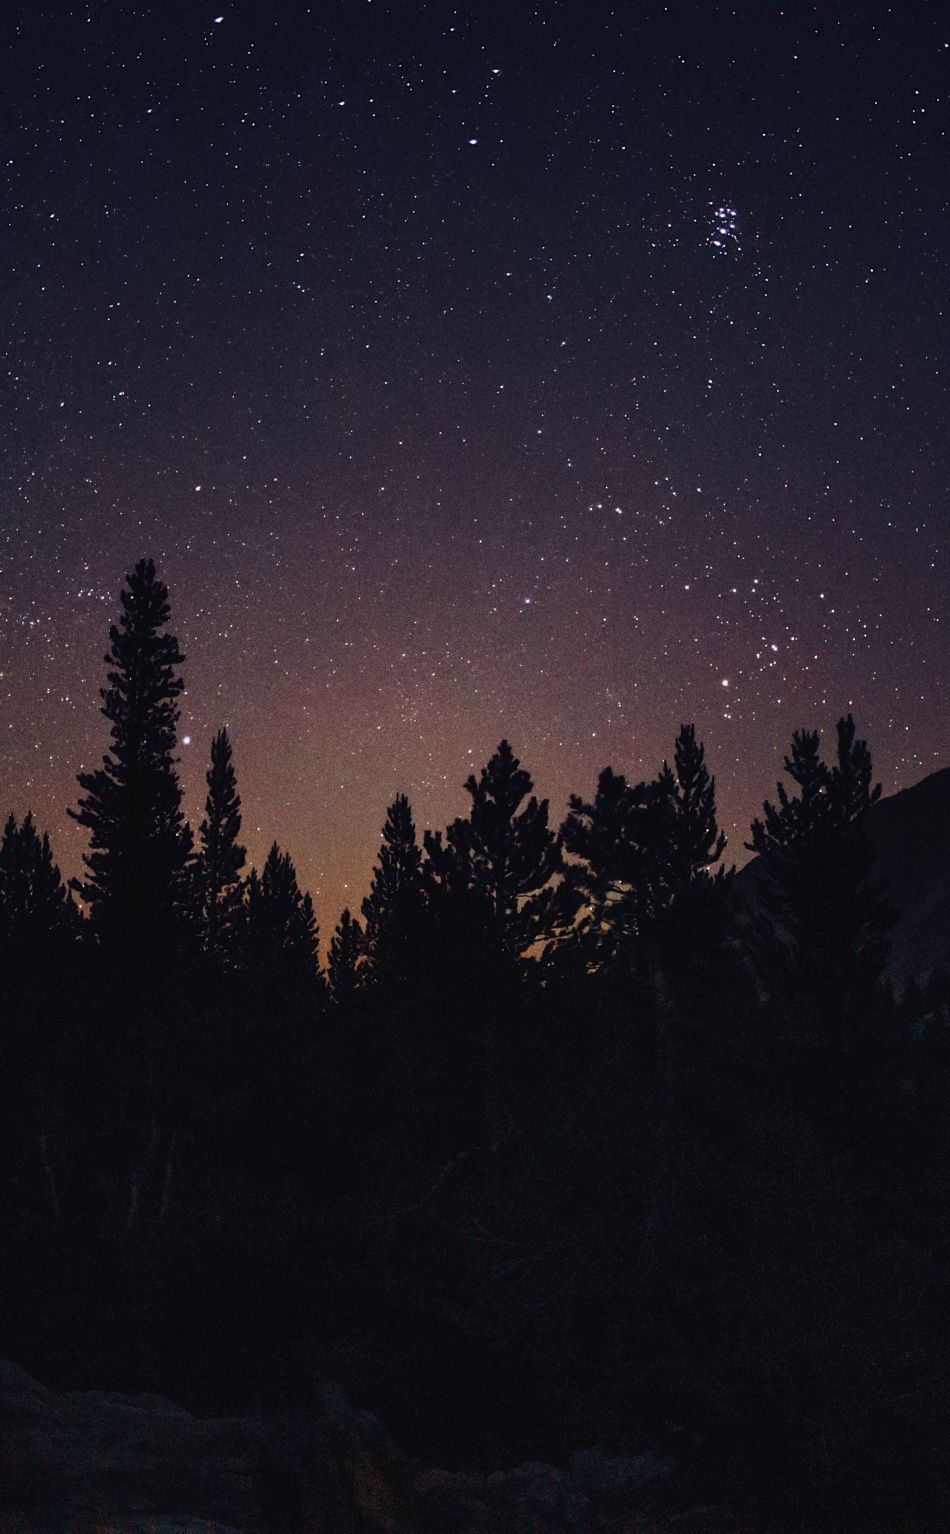 Night Stars Long Exposure Landscape Forest Milky Way Nature Trees Mountains 1080p Wallpaper Hdwal Wallpaper Landscape Forest Wallpaper Star Wallpaper